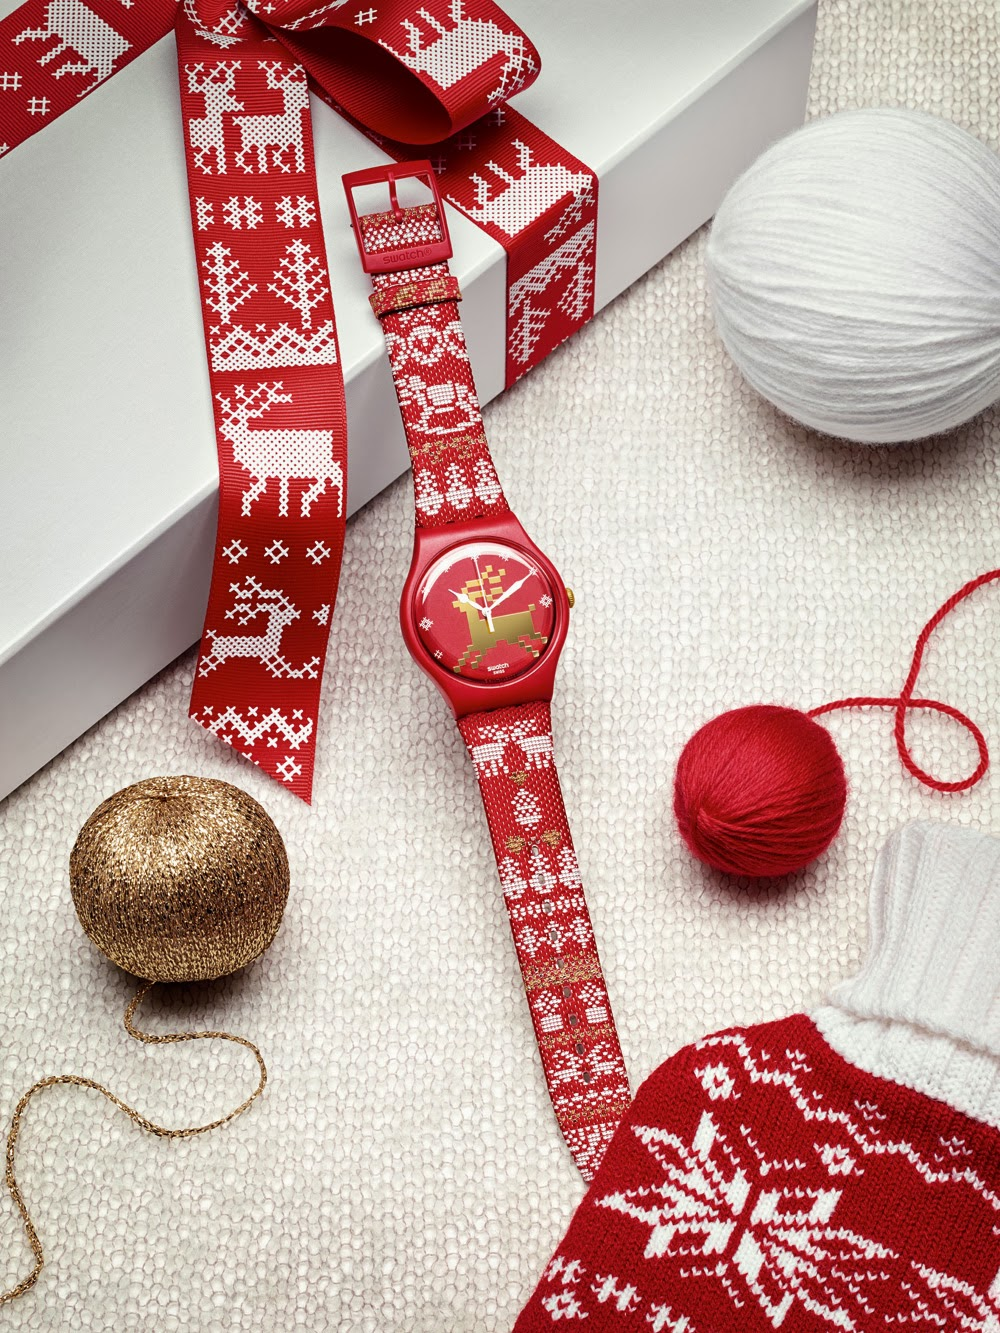 Swatch Red Knit Natal 2013